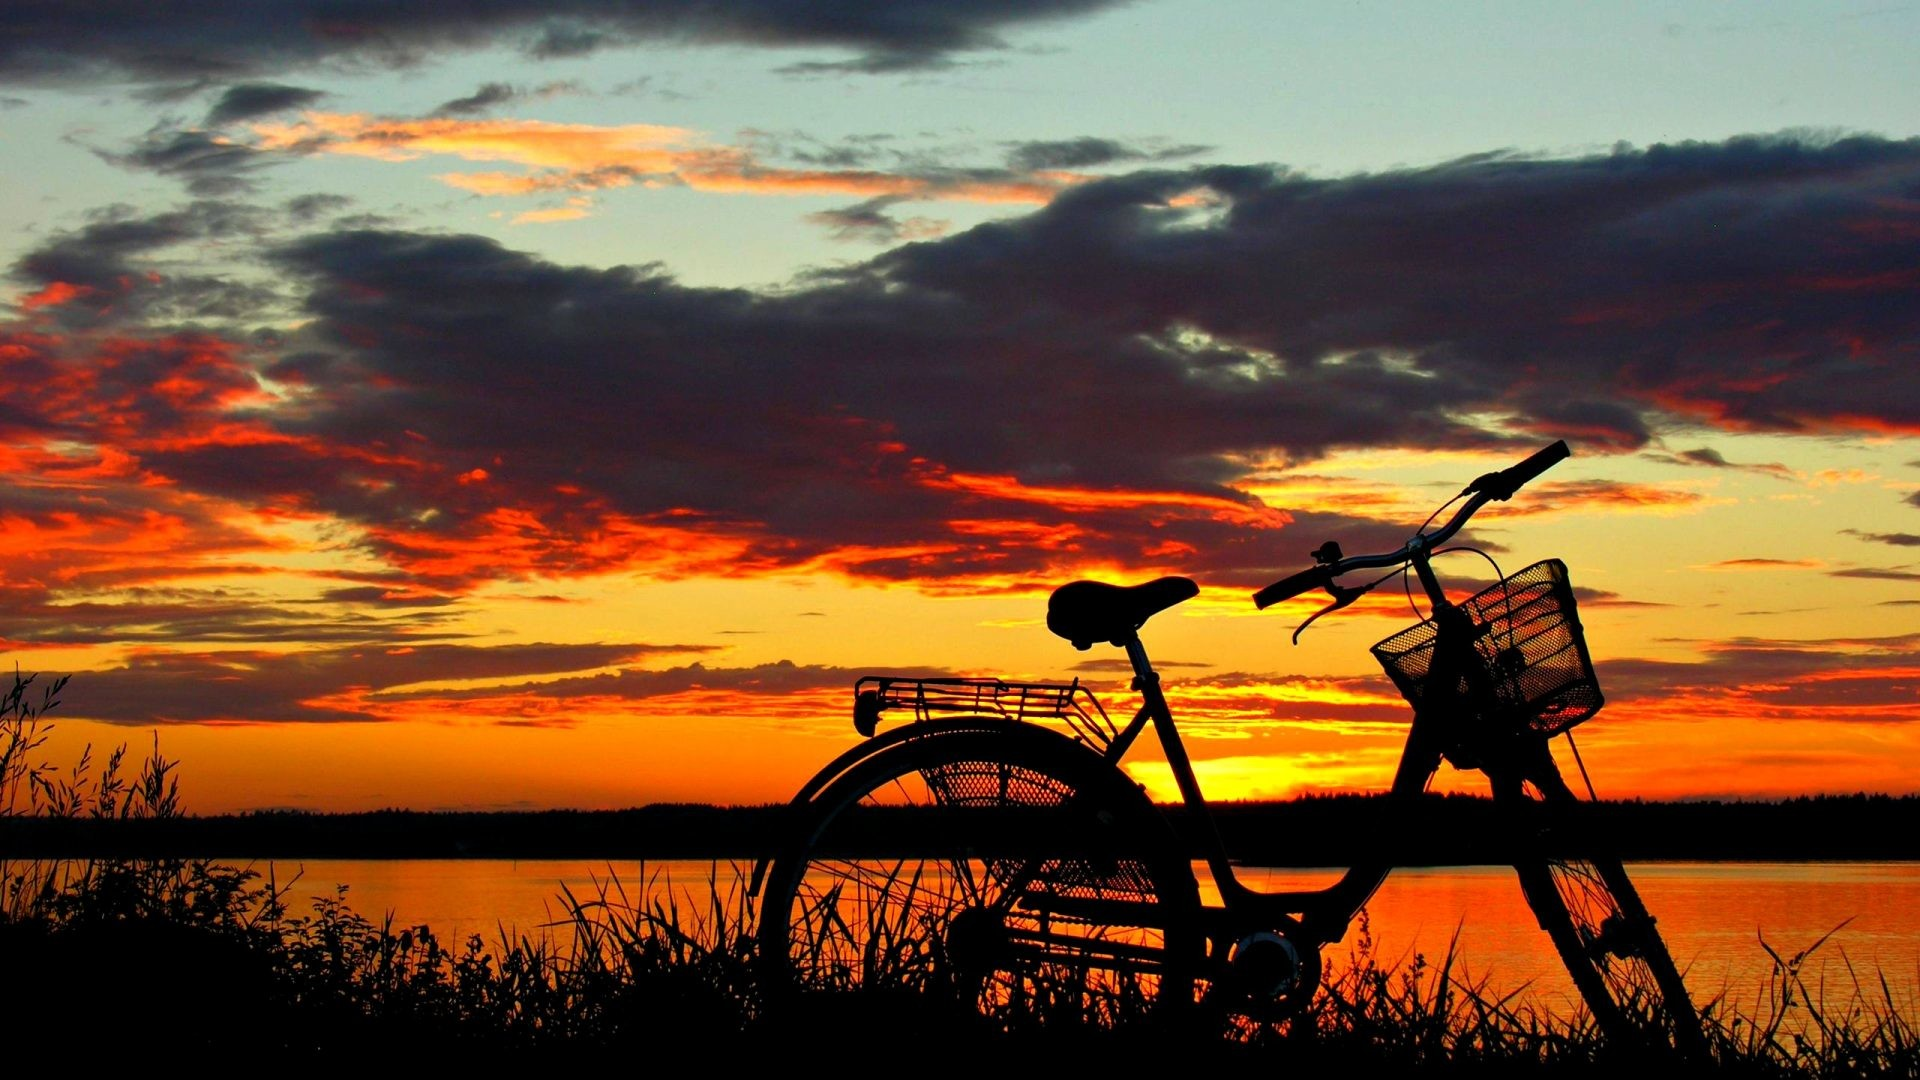 1920x1080 Bike Tag - Beautiful Sunset Grass Sunlight Peaceful Lake Red Amazing  Silhouette Evening Bike Bicycle Sky